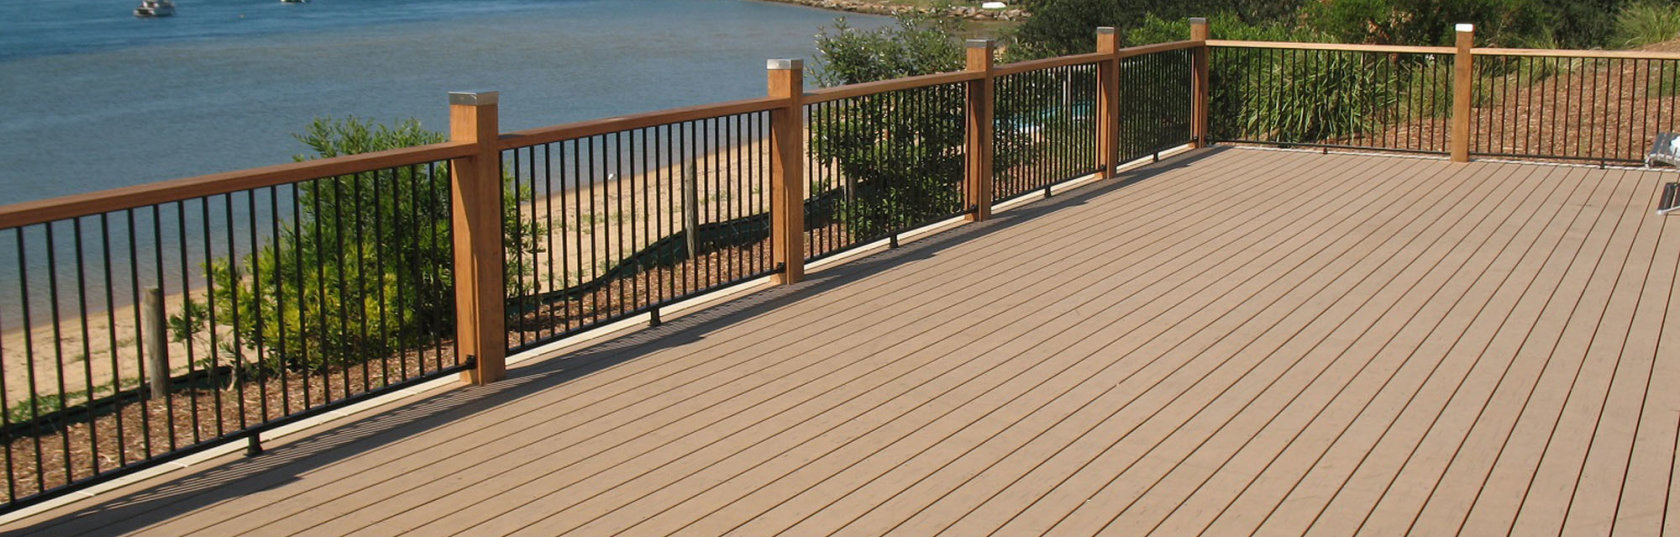 Don't let winter put you off building your dream deck!